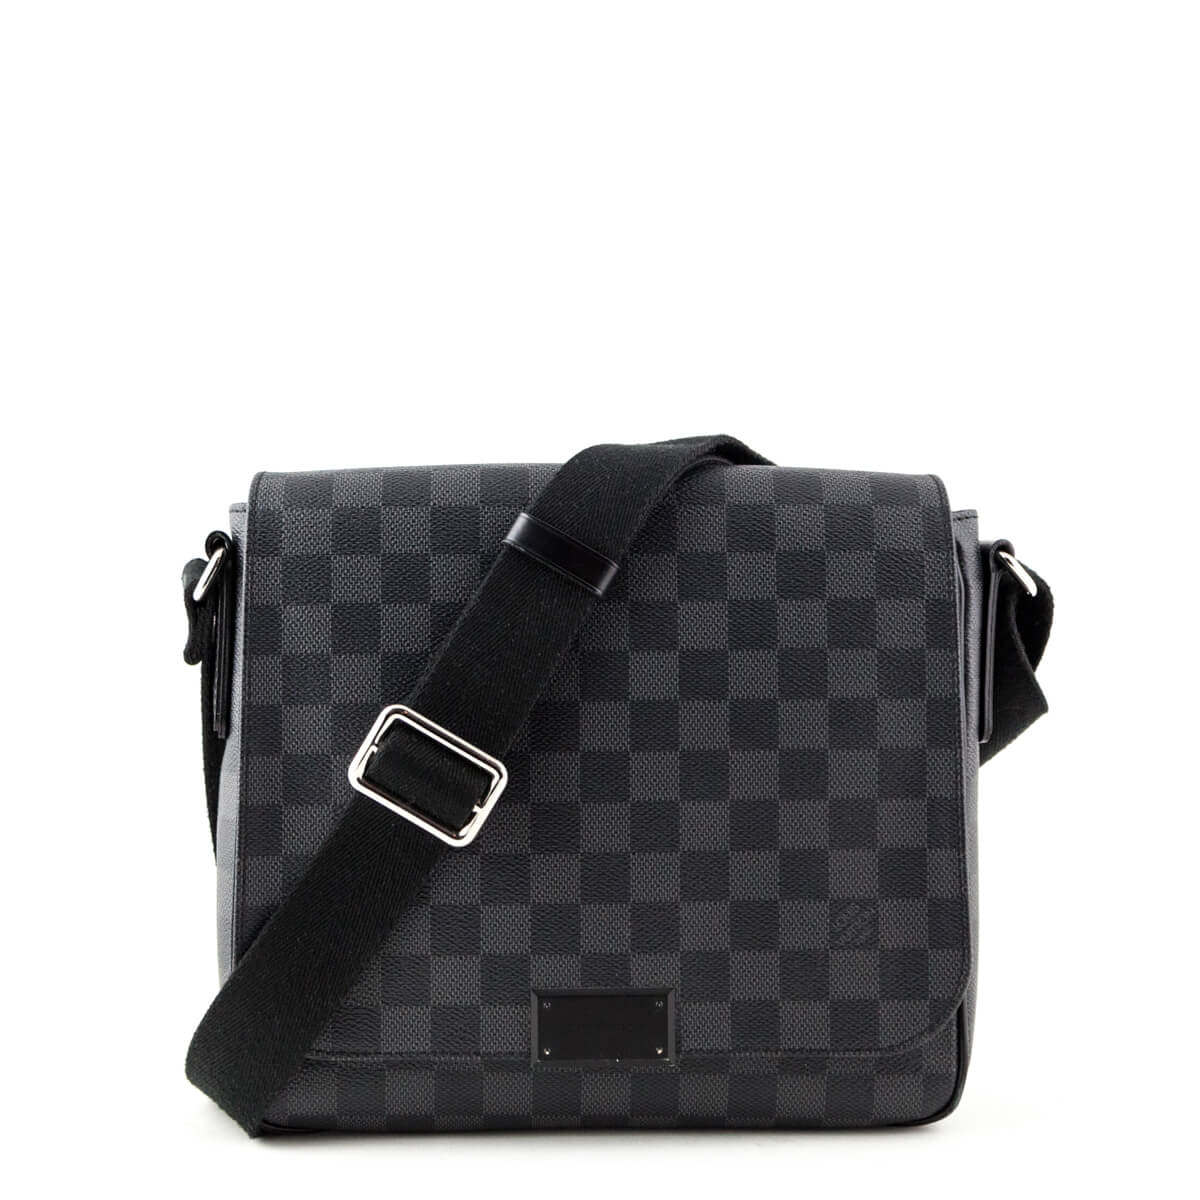 b01fdad0cdb7 Louis Vuitton Men s Damier Graphite District PM - LOVE that BAG - Preowned  Authentic Designer Handbags ...